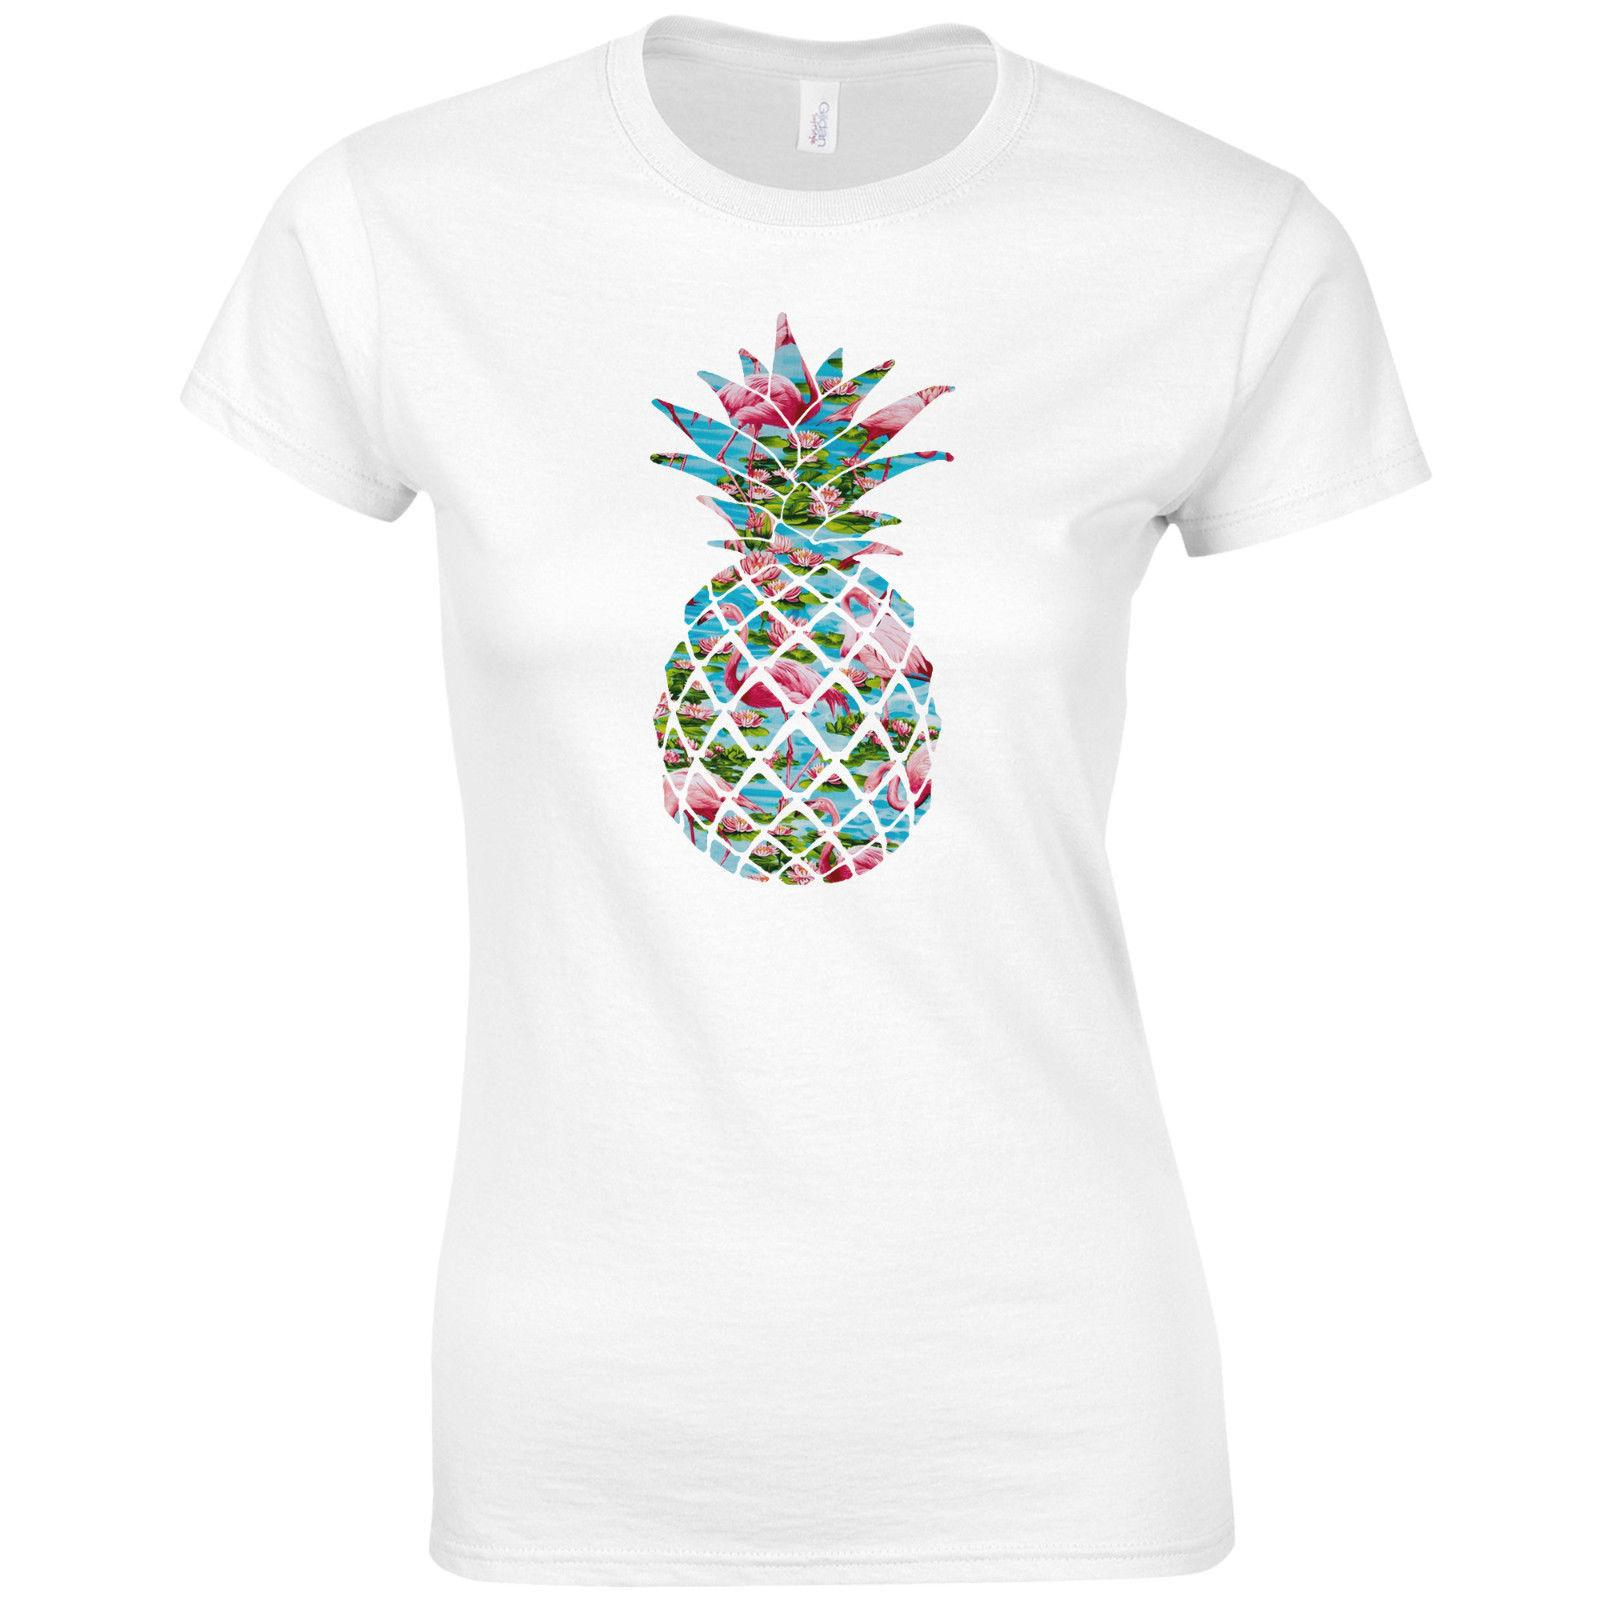 dfc6d491 Women's Tee Flamingo Pineapple Ladies Fitted T Shirt - Fresh Wholesale  Discount Hipster Tropical Fruit Top